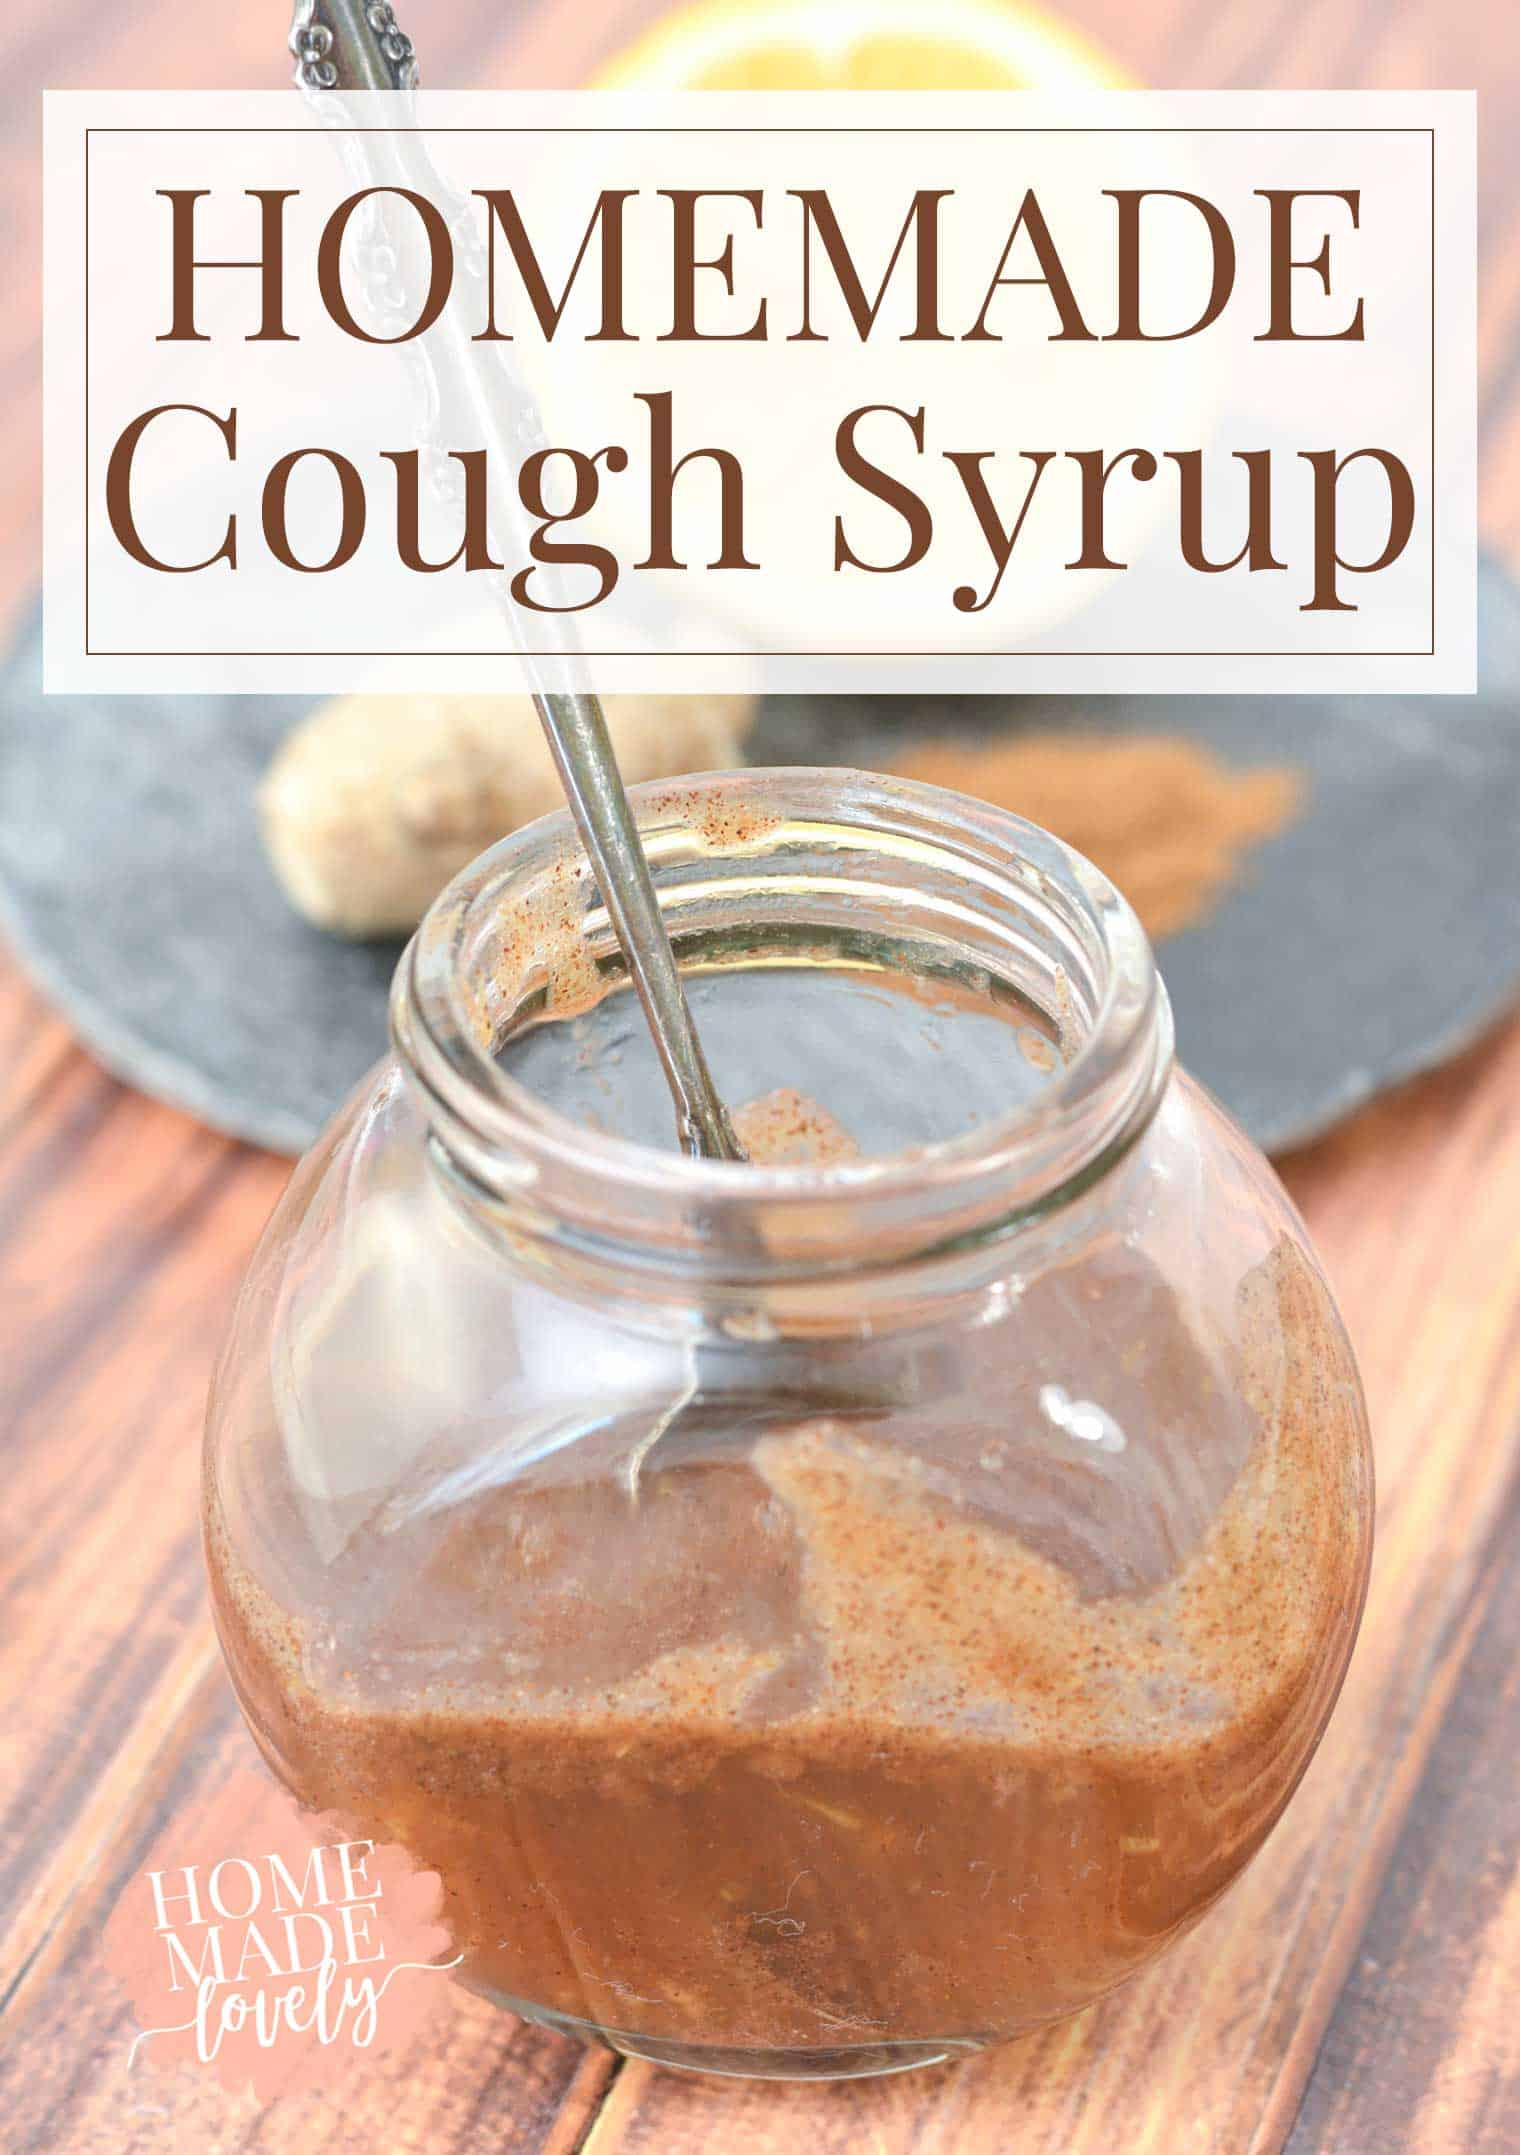 Homemade cough syrup tastes great made from common kitchen foods homemade cough syrup in a jar some on spoon forumfinder Images